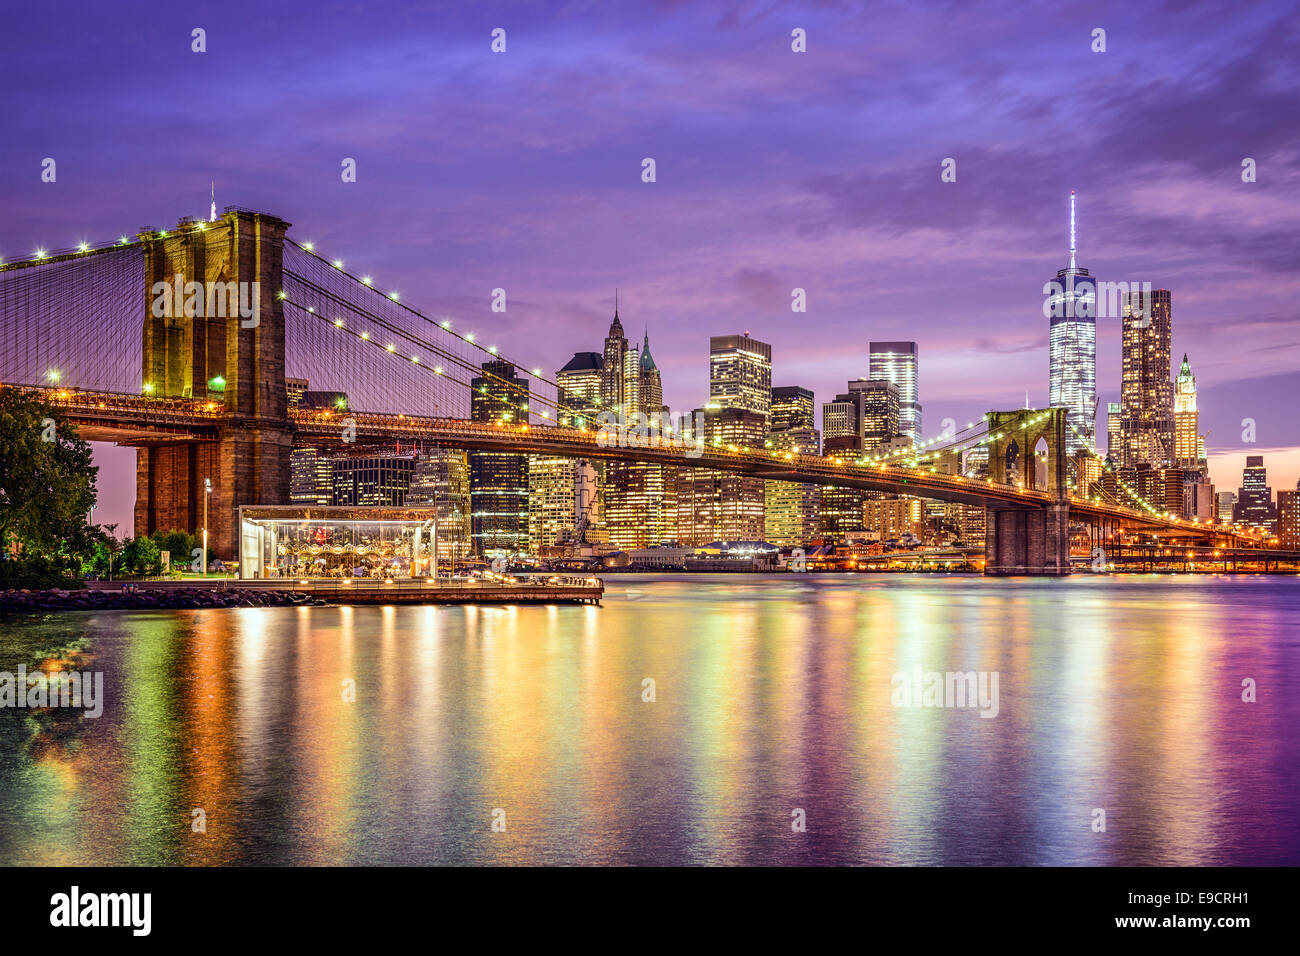 New York, New York, USA city skyline with the Brooklyn Bridge and Manhattan Financial District over the East River. Stock Photo